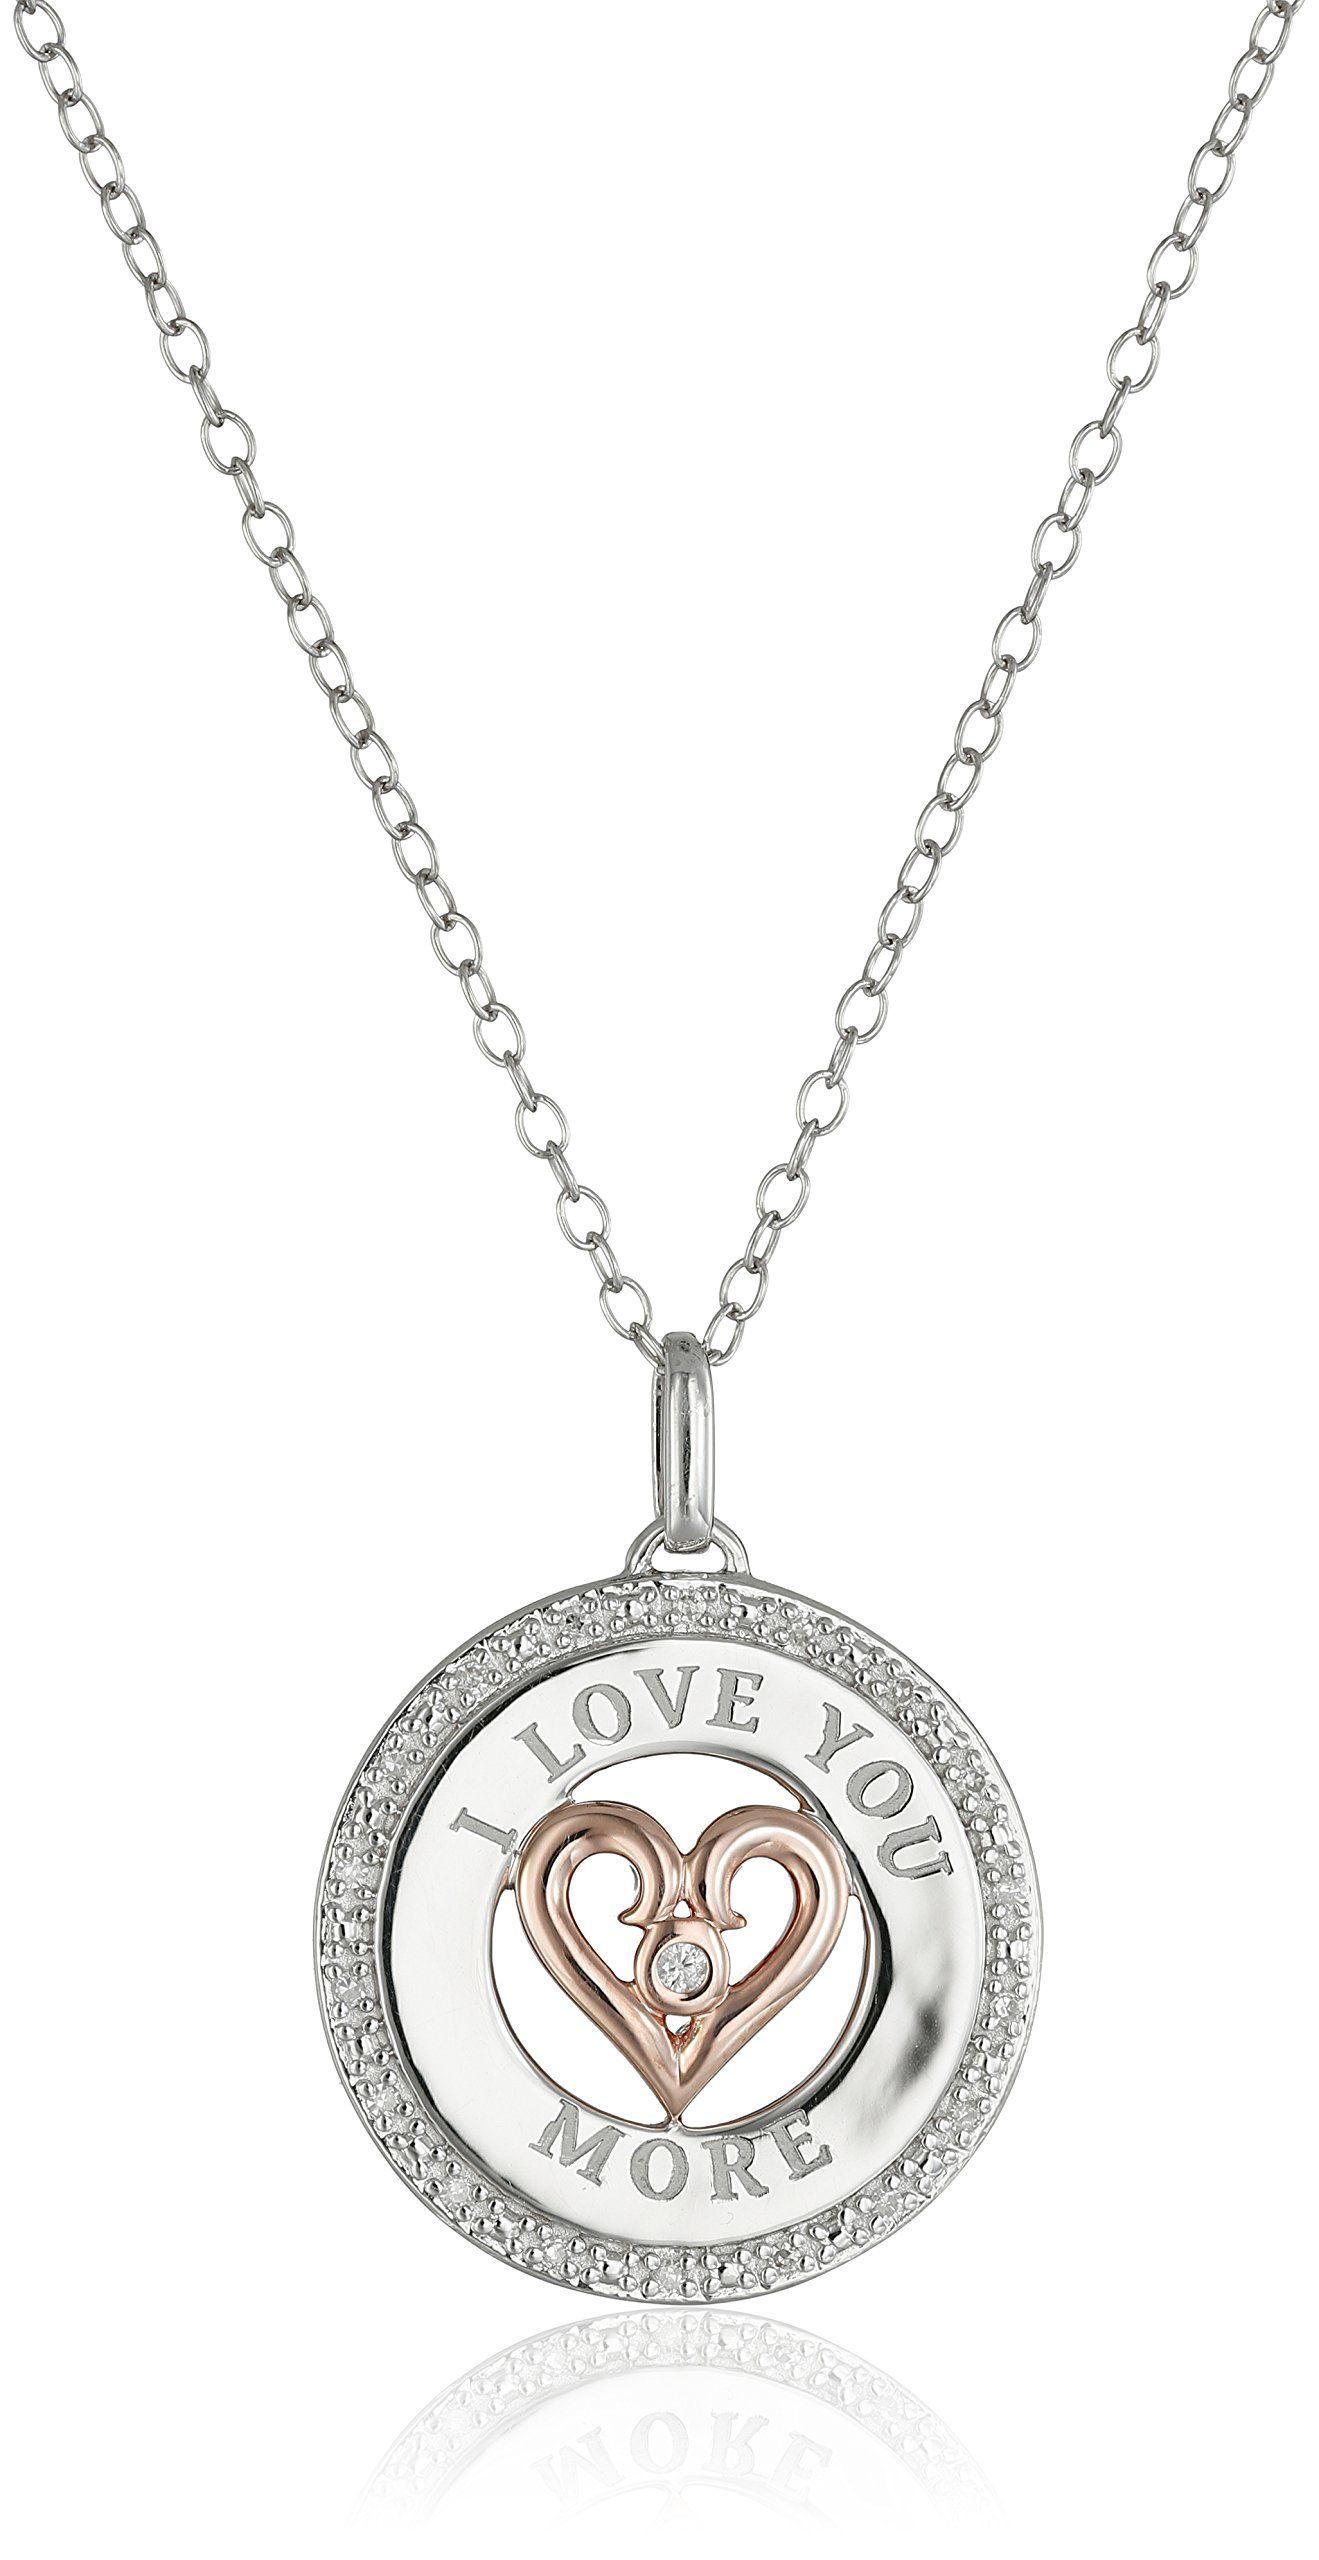 Sterling Silver''I Love You More'' Pendant Necklace with Rose Gold Plating and Round-Cut Diamonds